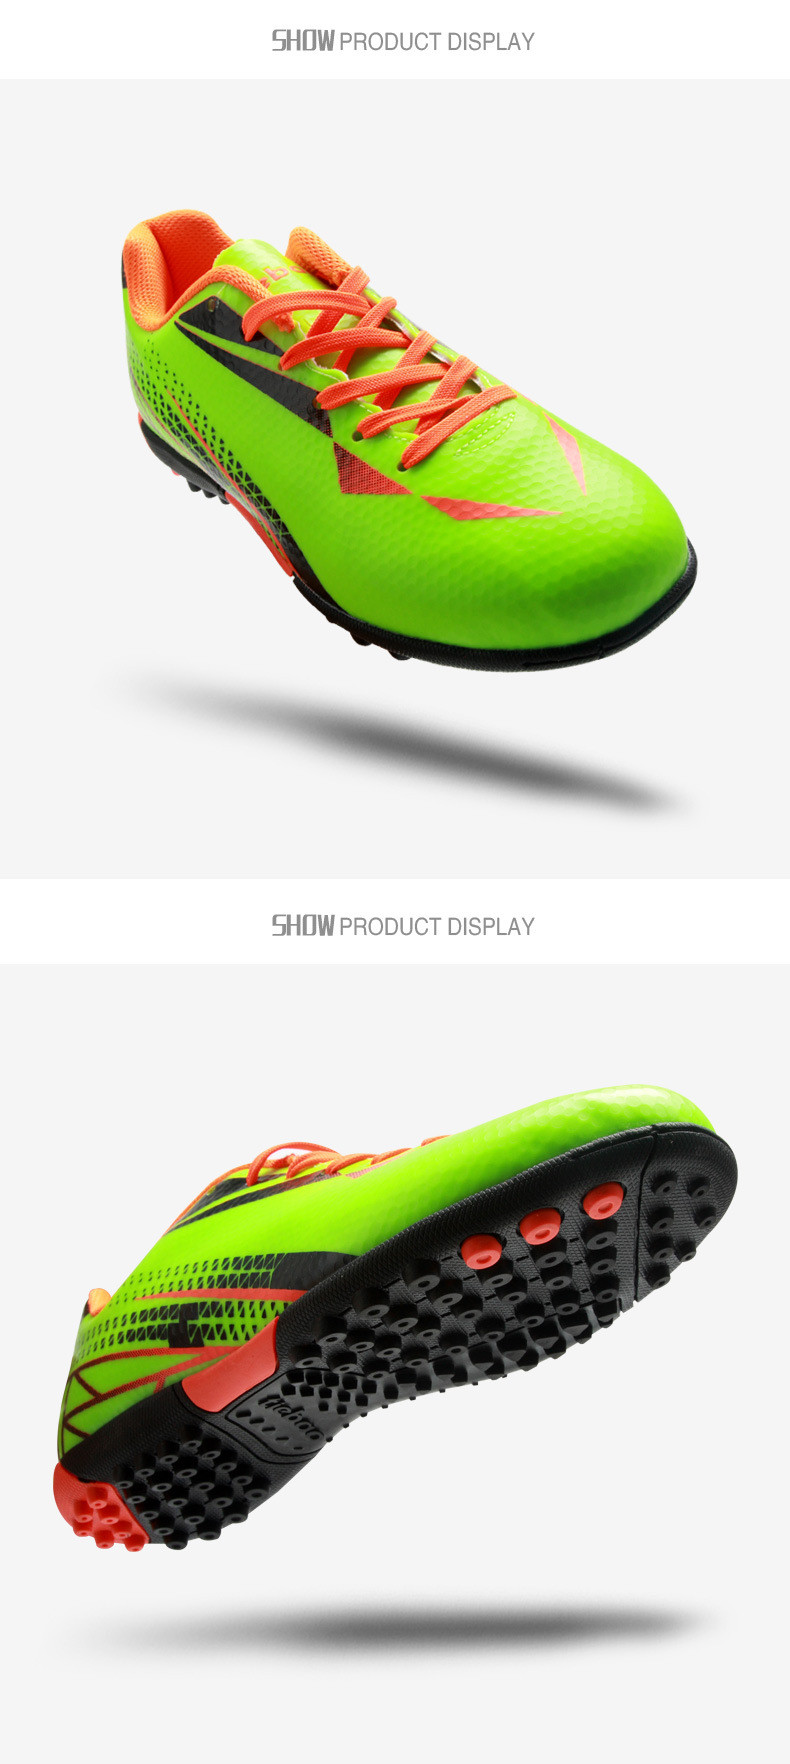 medium resolution of new soccer shoes boots futsal chaussures foot mens indoor football boots voetbalschoenen football cleats soccer shoes 3 colorsusd 35 99 pair